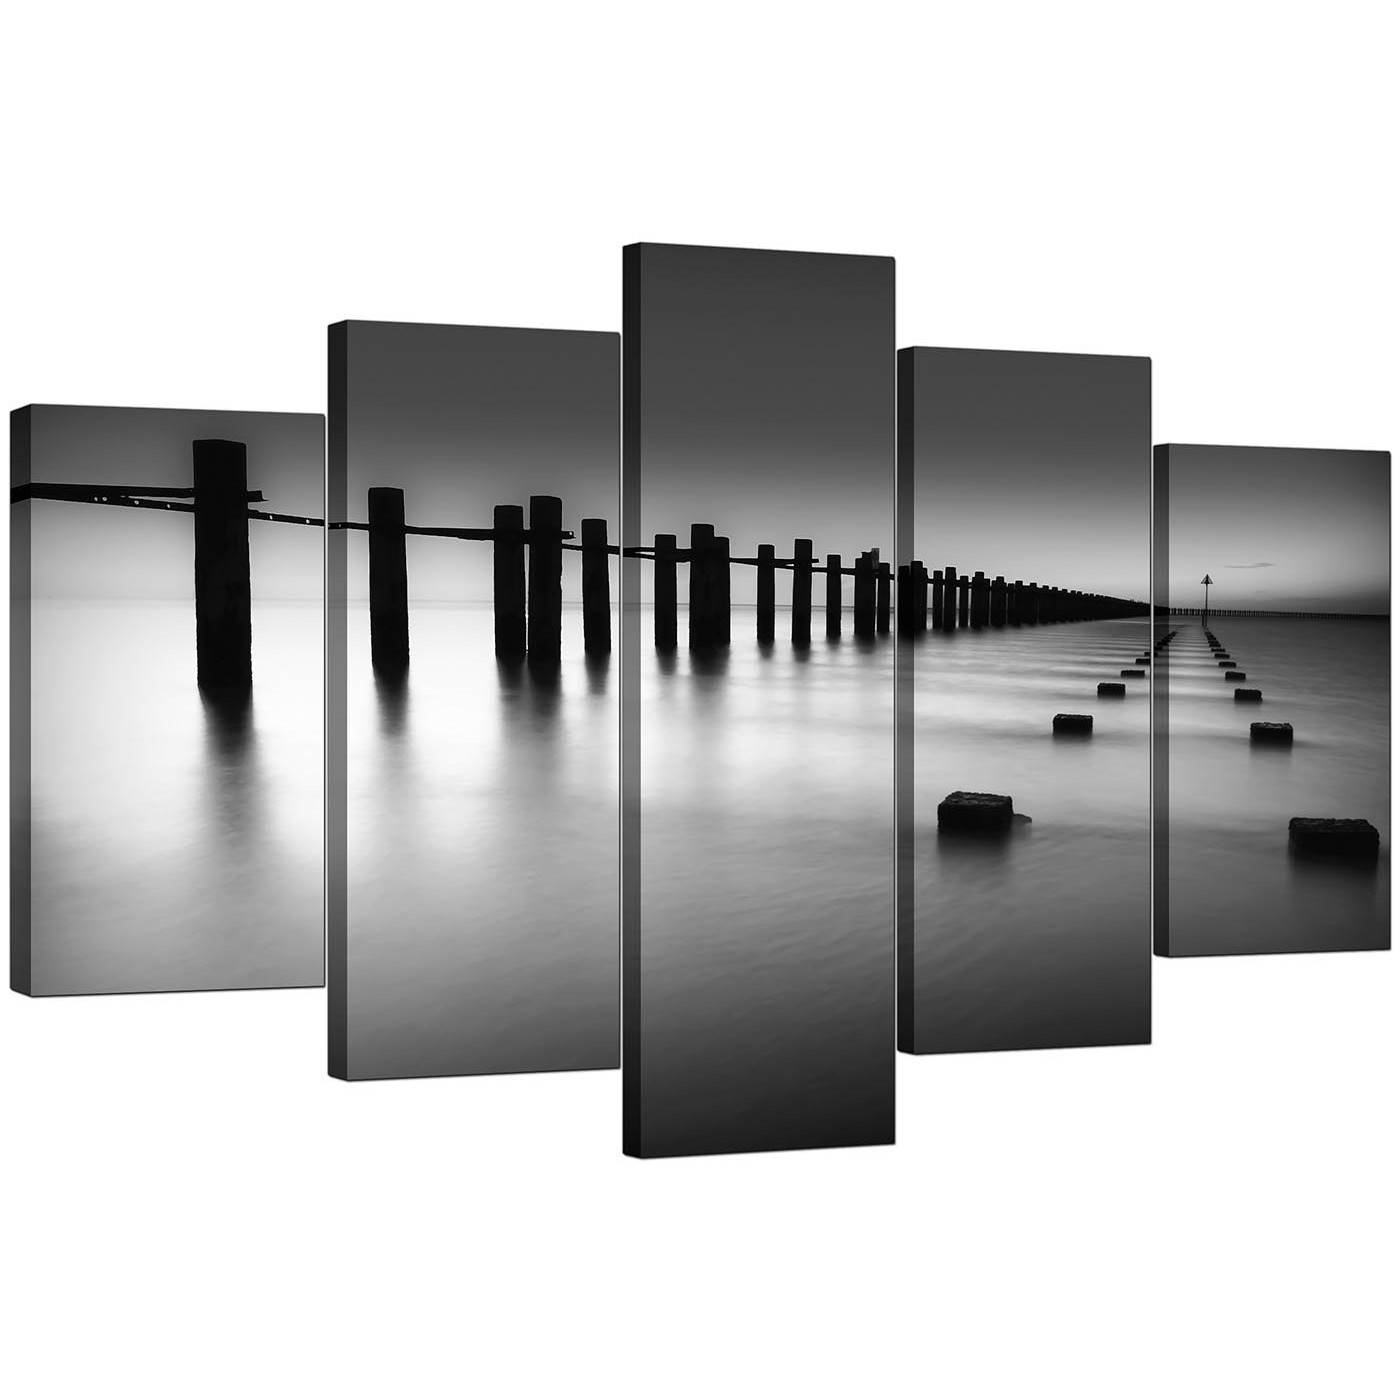 Extra Large Sea Canvas Prints 5 Piece In Black & White Intended For 2018 Large Black And White Wall Art (View 15 of 20)